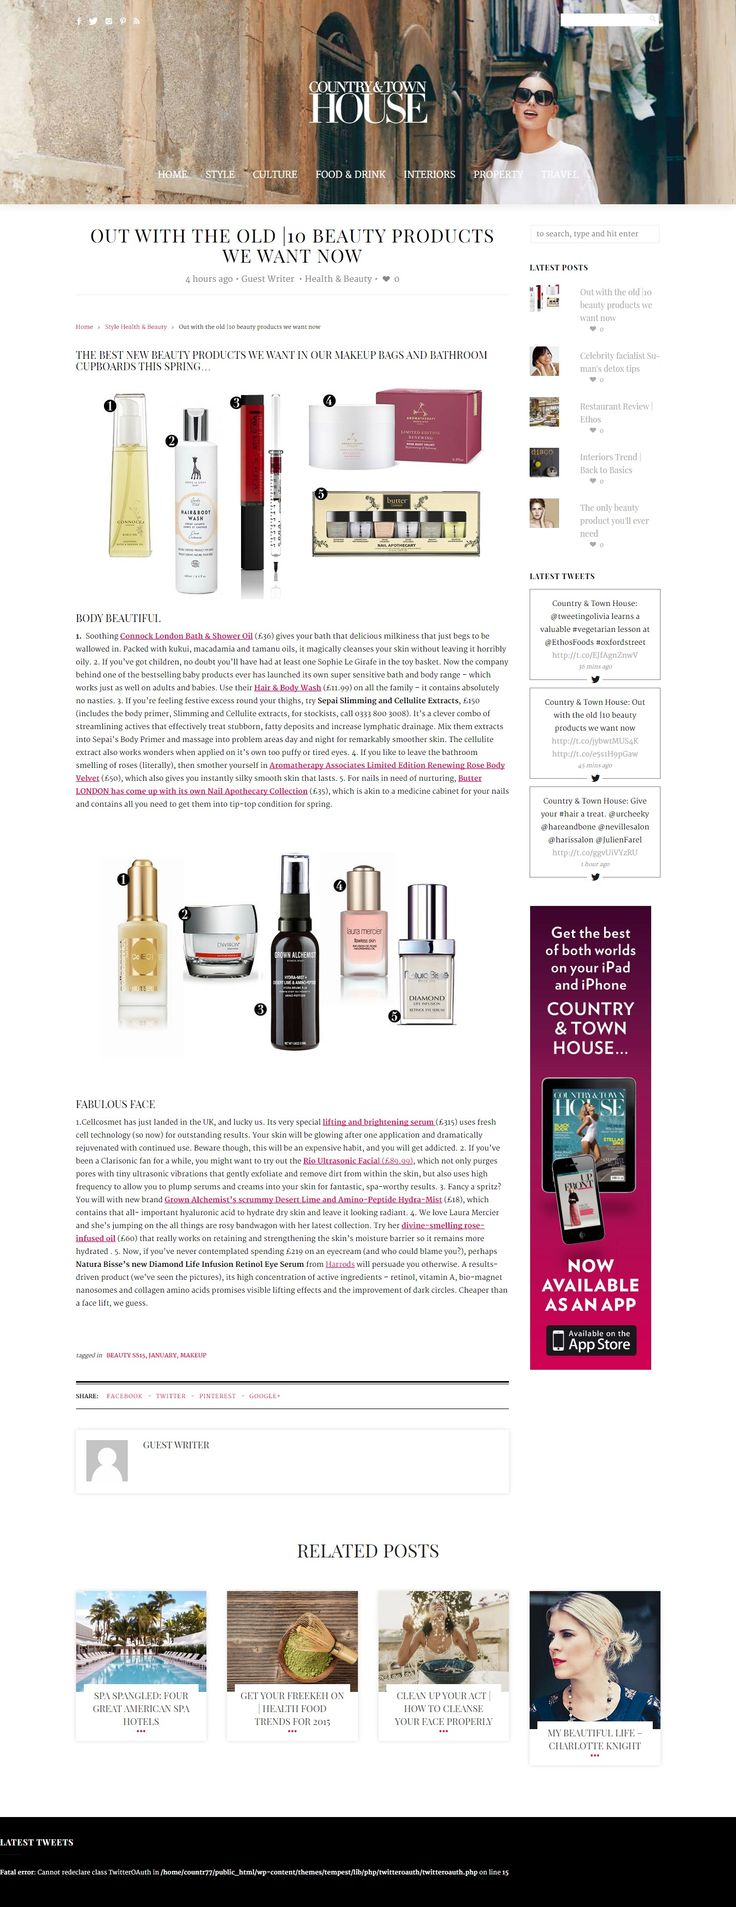 Country and Town UK listed 10 beauty products you want NOW. WIth Sophie la girafe Baby Hair & Body Wash, it contains absolutely no nasties.   #sophielagirafe #sophiethegiraffe #sophielagirafecosmetics #countryandtown #uk #beauty #products #you #want #now